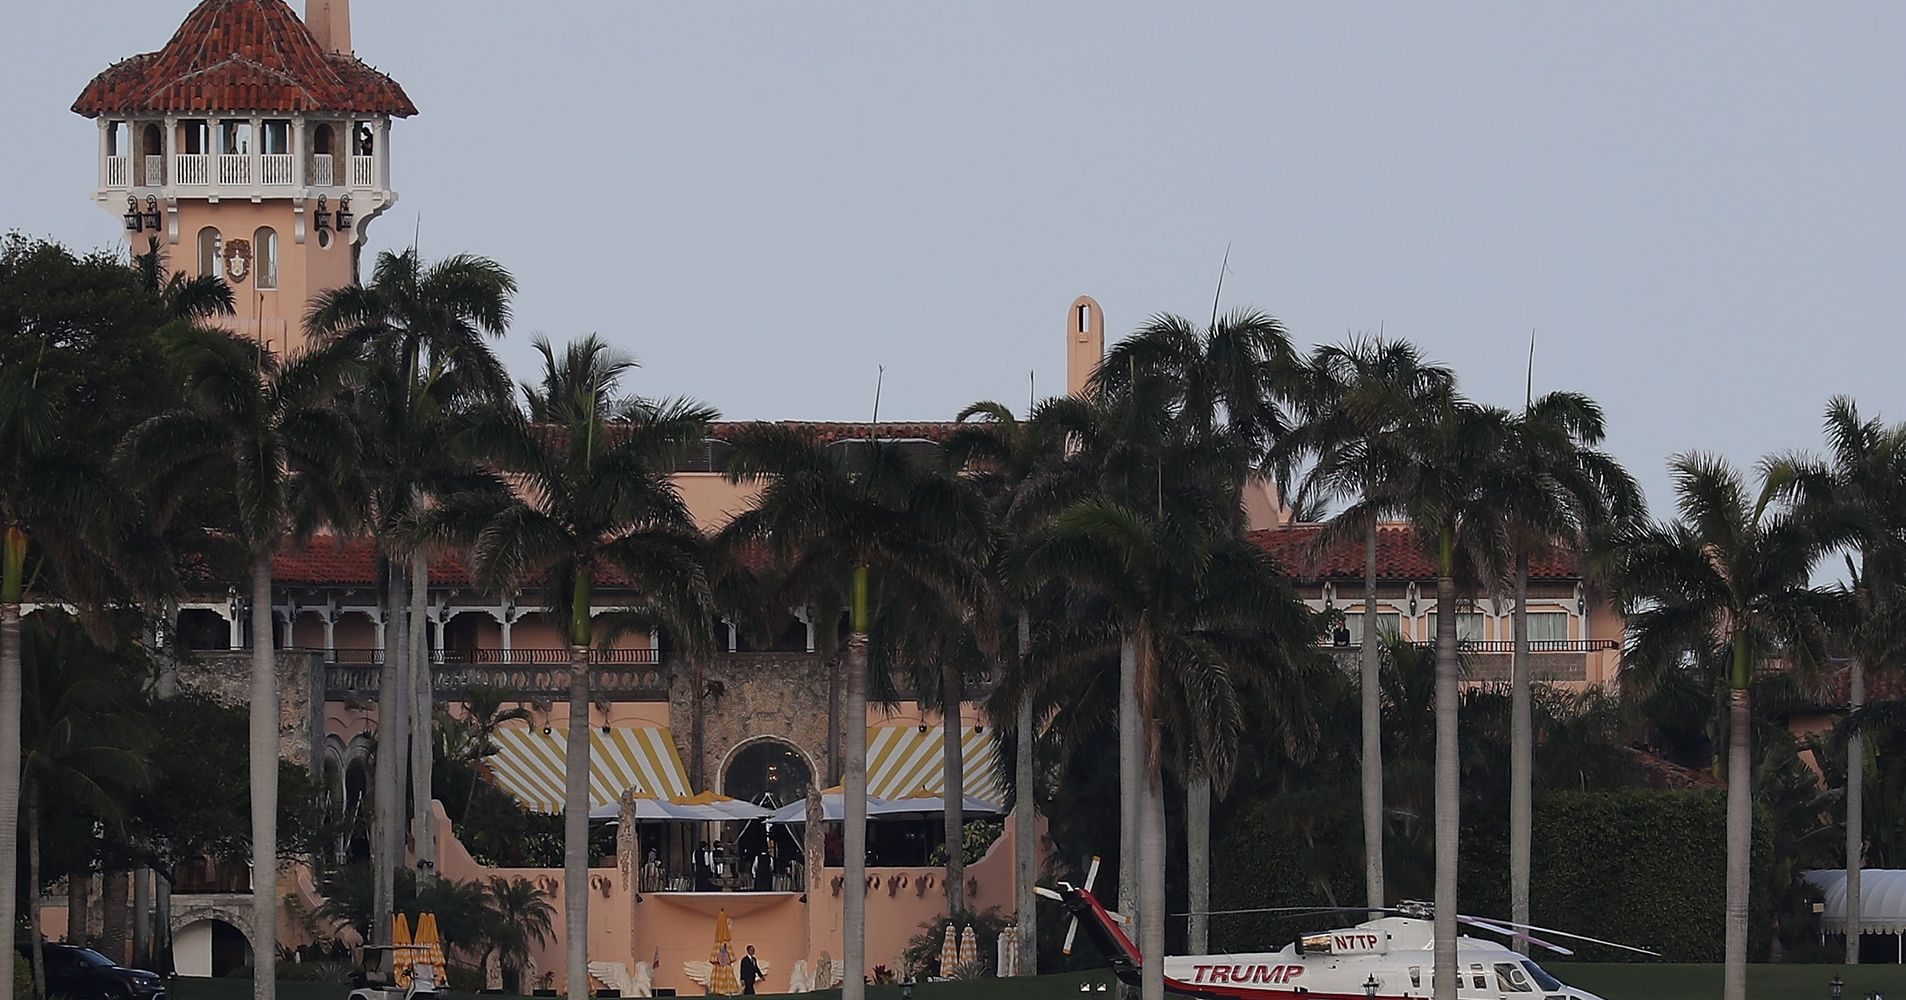 Cleveland Clinic, American Cancer Society Cancel Events At Trump's Mar-A-Lago